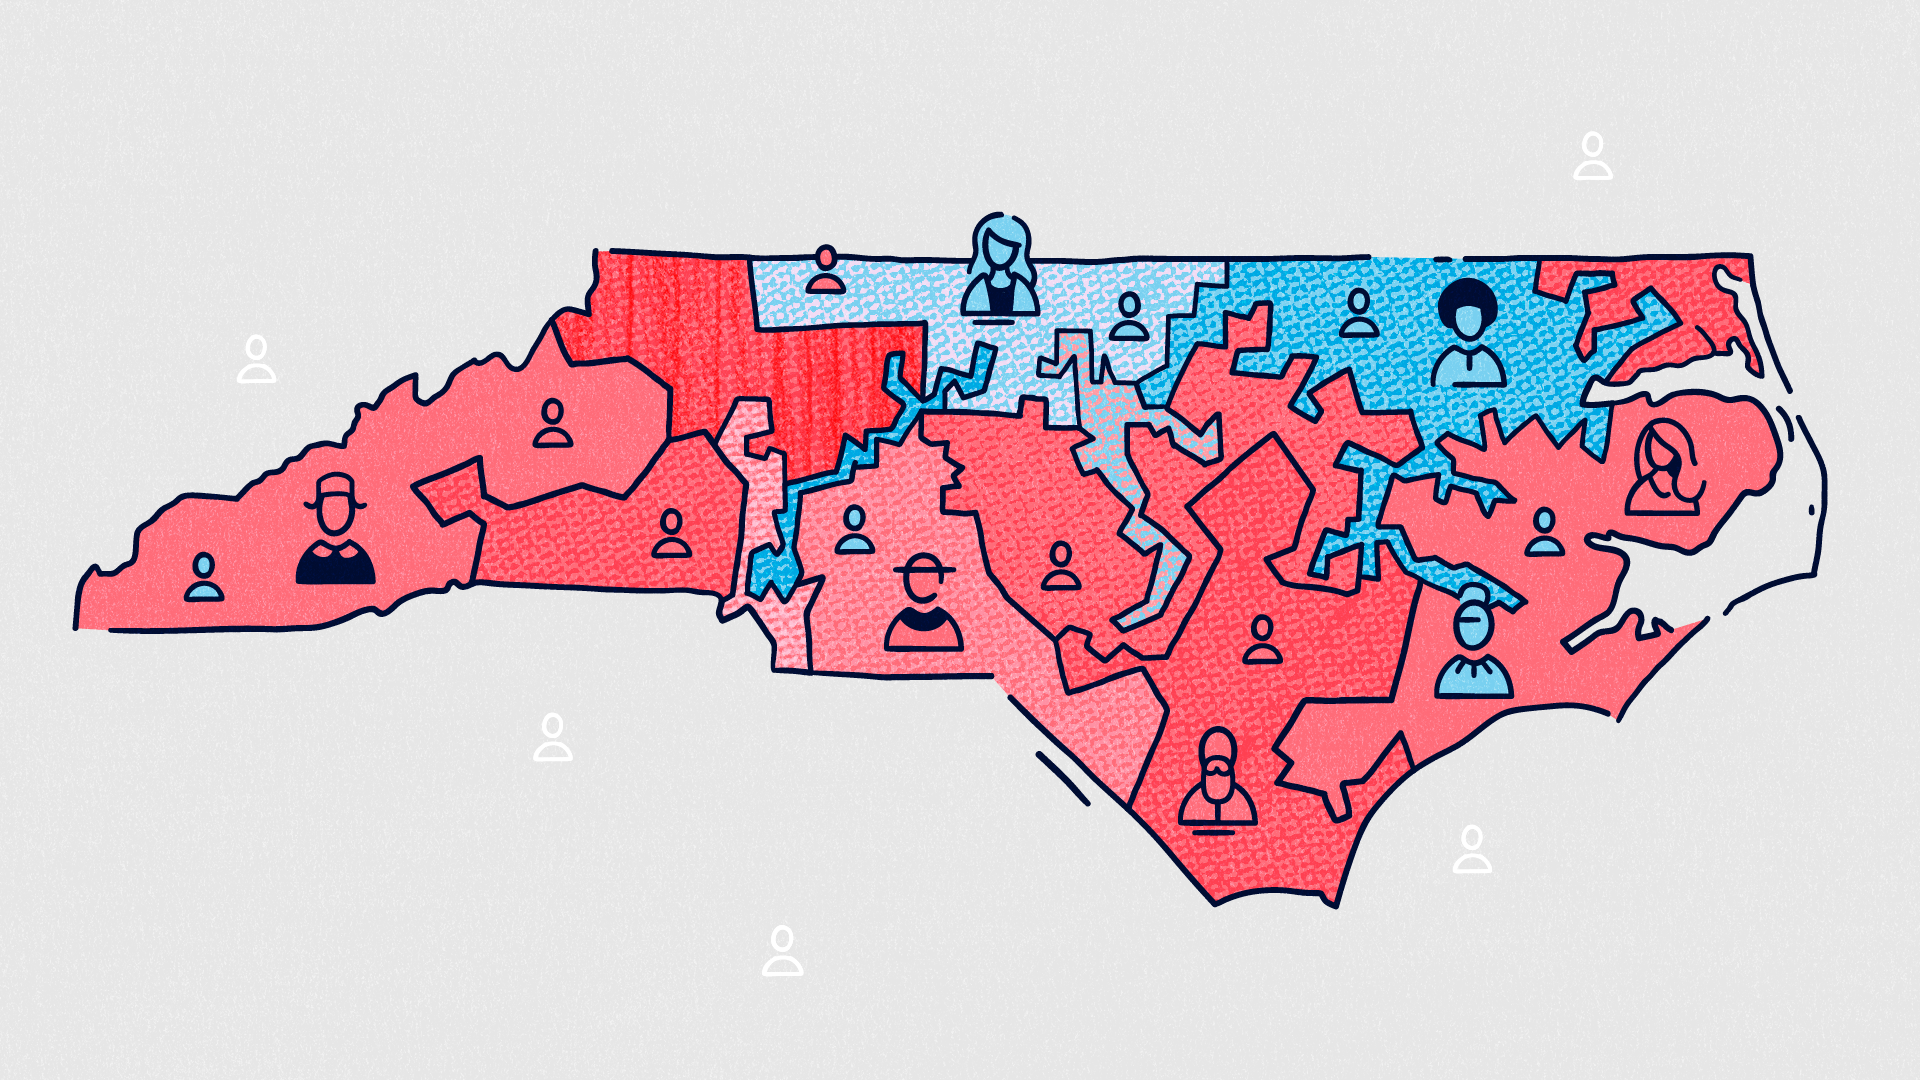 How Republicans Rigged the Map - Flippable